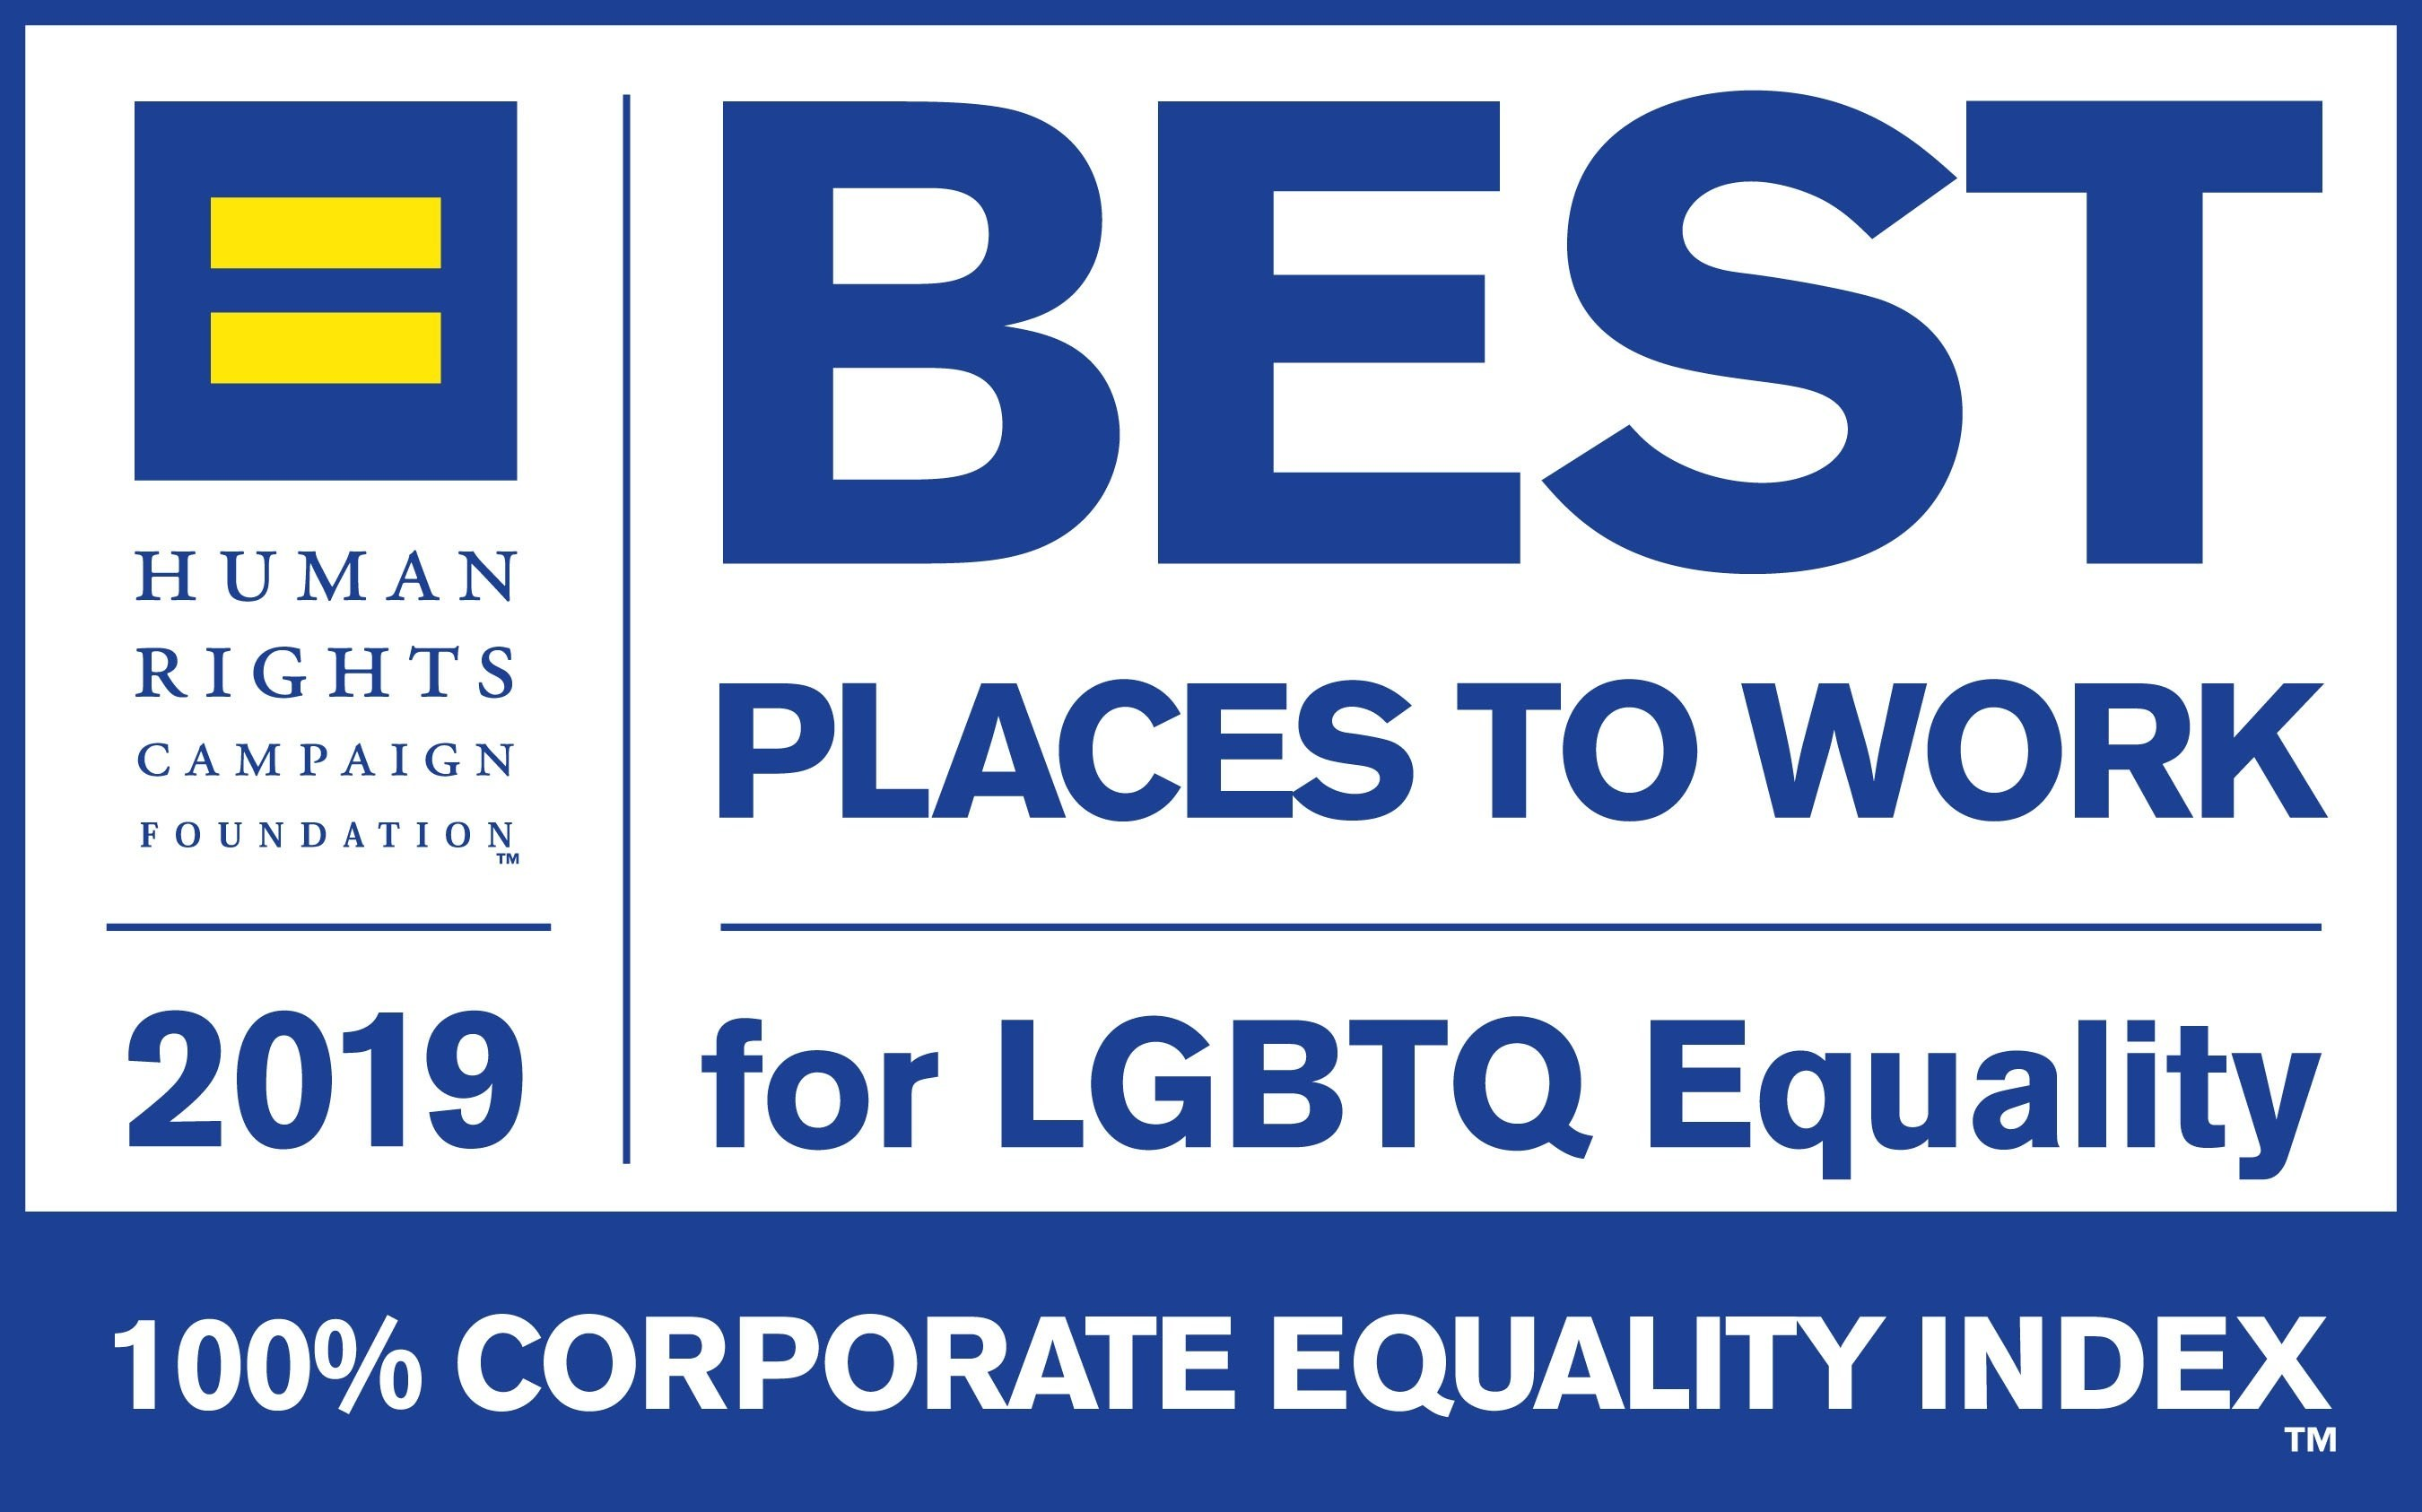 "Αποτέλεσμα εικόνας για Best Place to Work for LGBTQ Equality"" for 9th consecutive year"